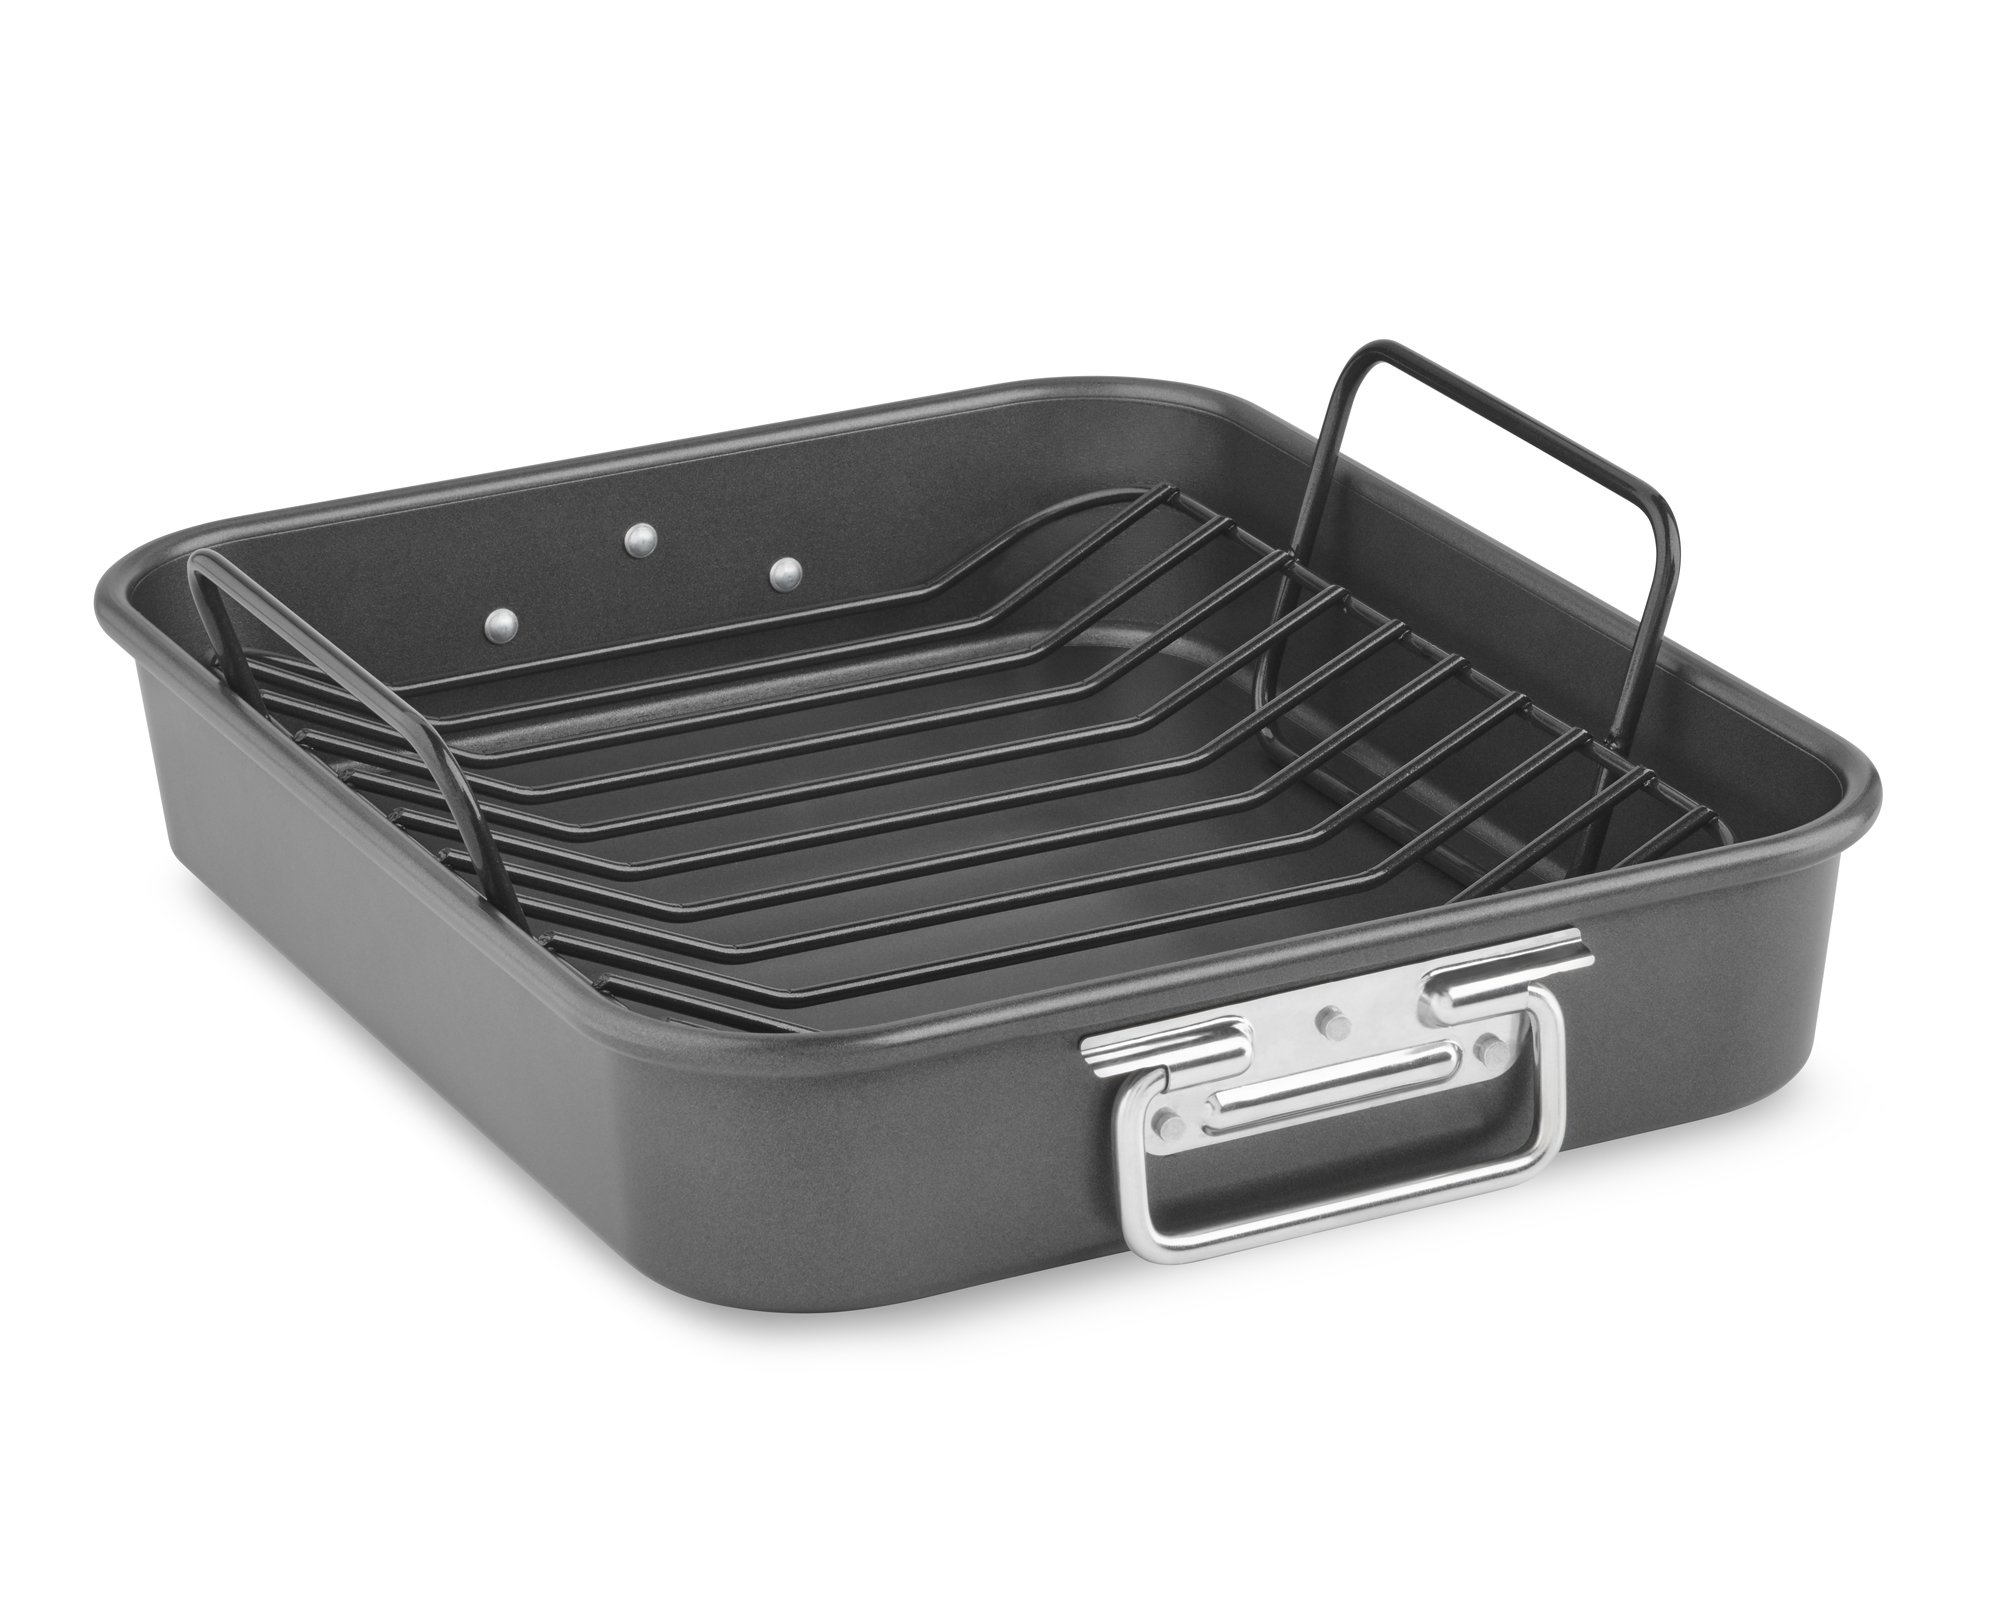 KitchenAid KitchenAid KBNSO16RP 16'' Aluminized Steel Roaster with Rack - Nonstick